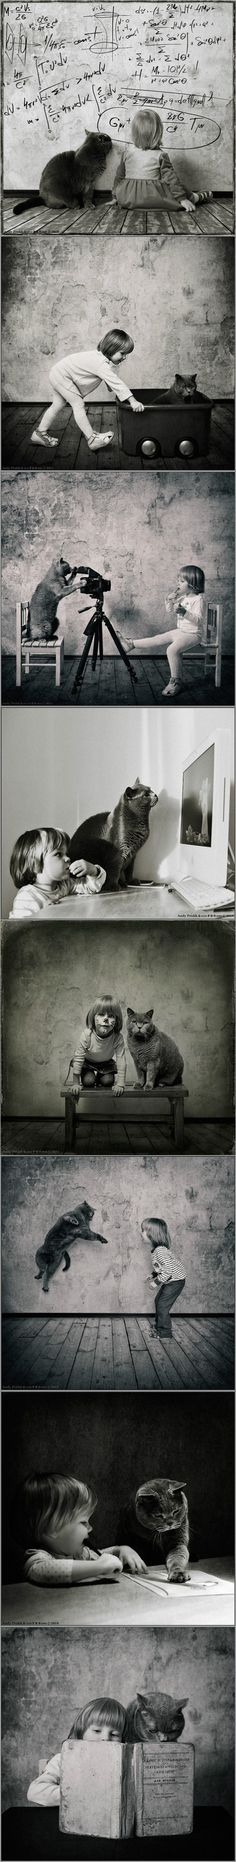 I don't like cute cat pics, but this one is different ;) Photography by Andy Prokh.